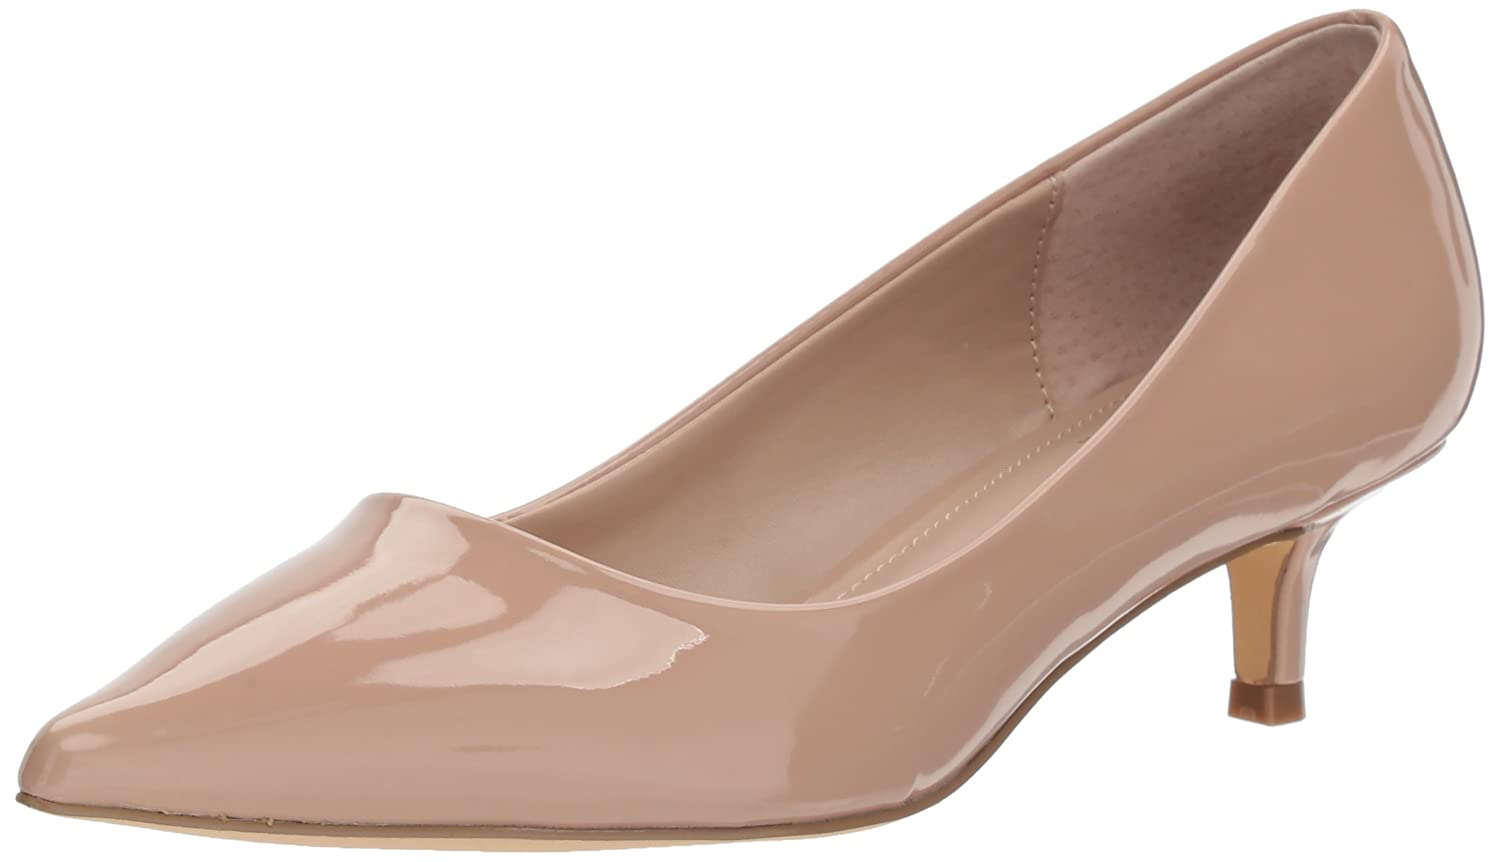 Charles by Charles David Women's Dare Pump B07495BW32 11 B(M) US|Nude